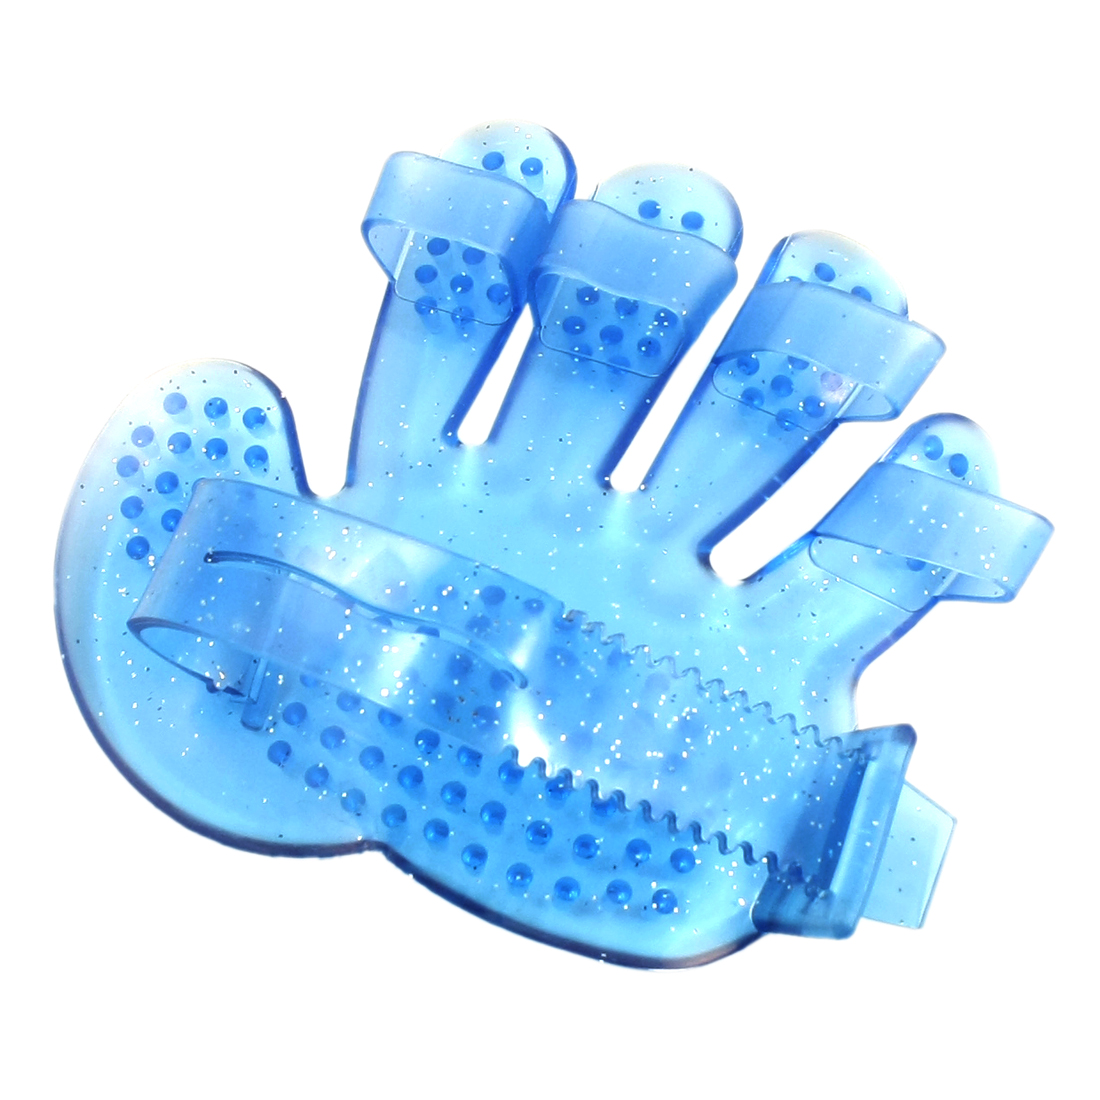 Pet Cat Dog Soft Plastic Adjustable Palm Shape Massage Grooming Glove Hair Fur Bath Brush Comb Blue